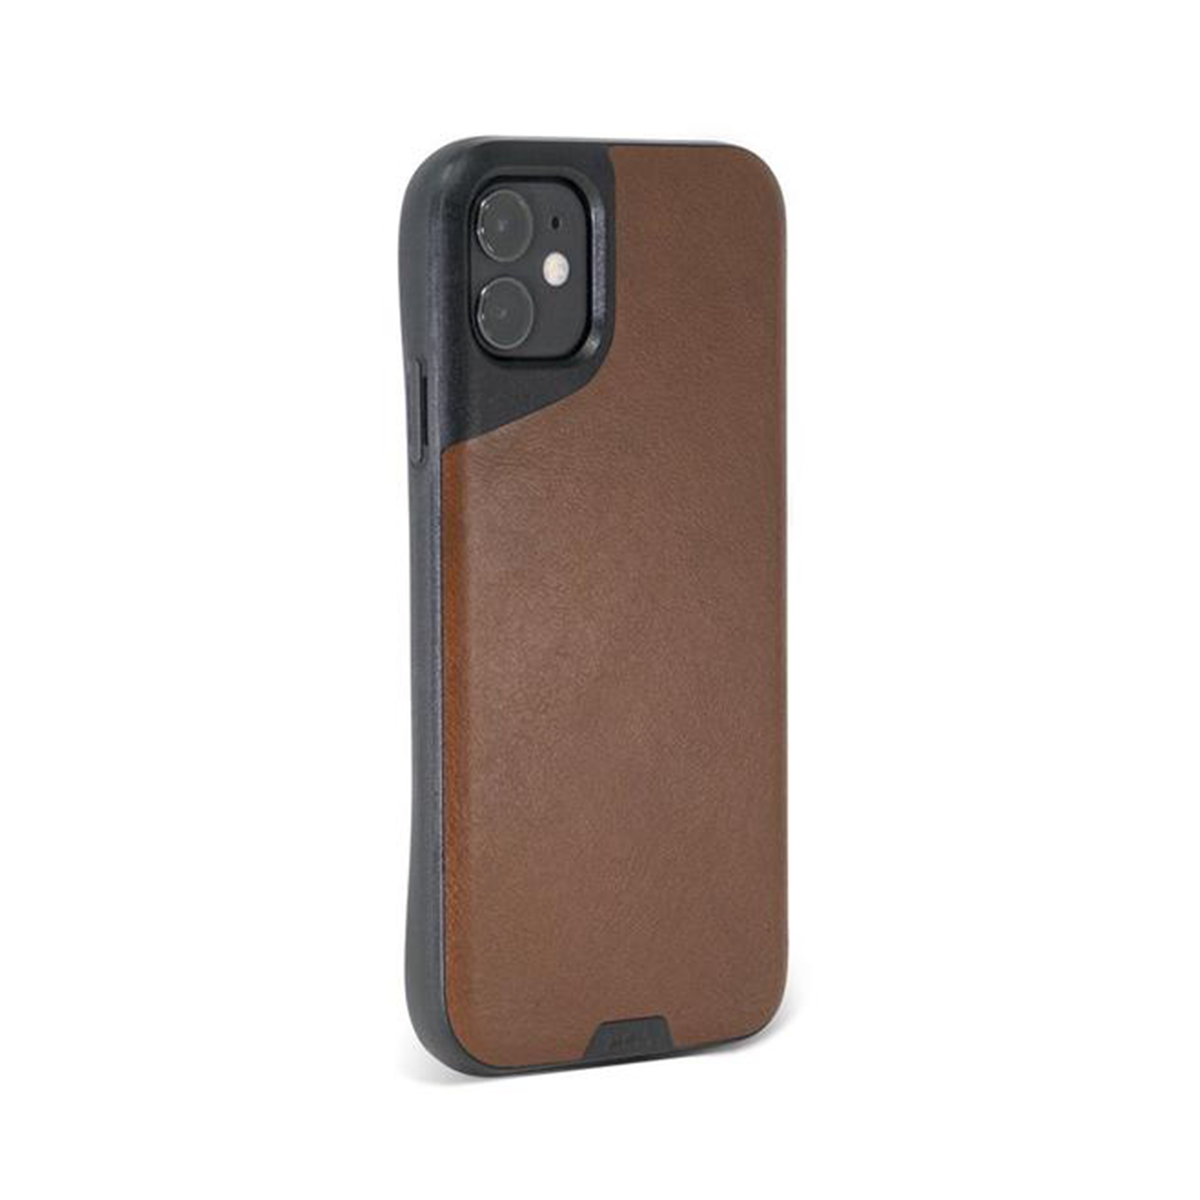 Mous - Contour Case for iPhone 11 - Brown Leather